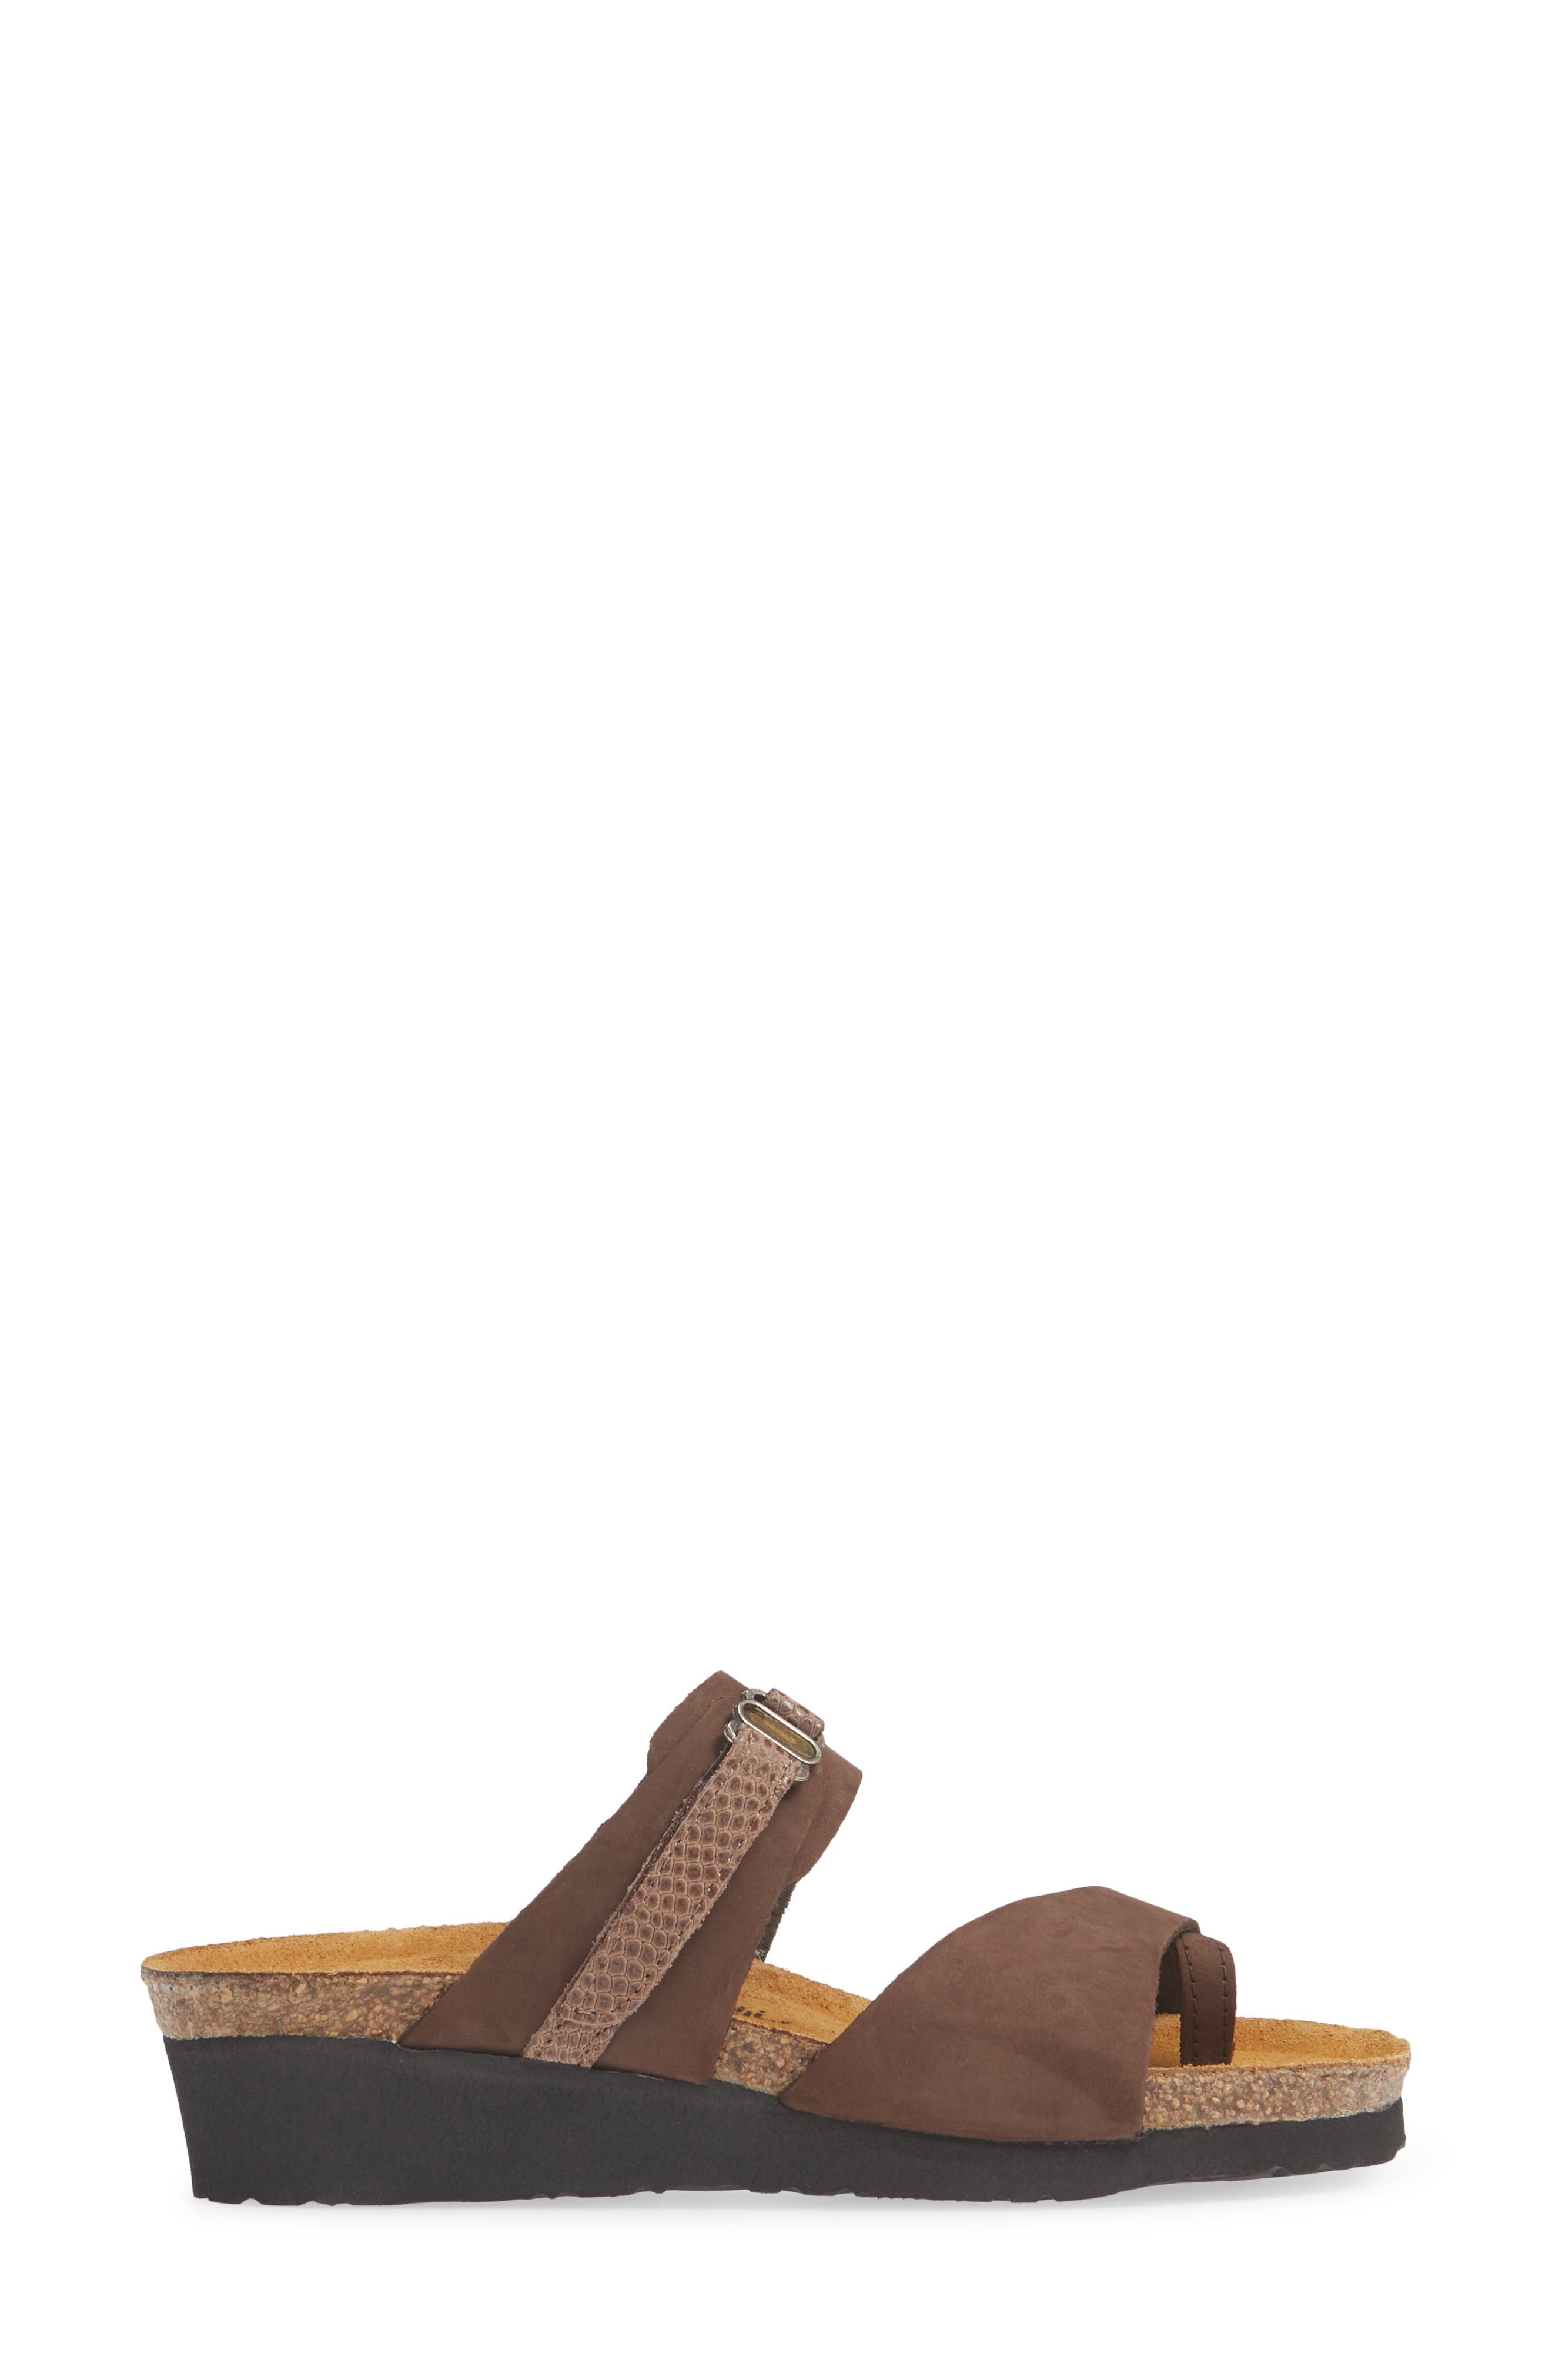 Jessica Sandal,                             Alternate thumbnail 3, color,                             COFFEE BEAN NUBUCK LEATHER